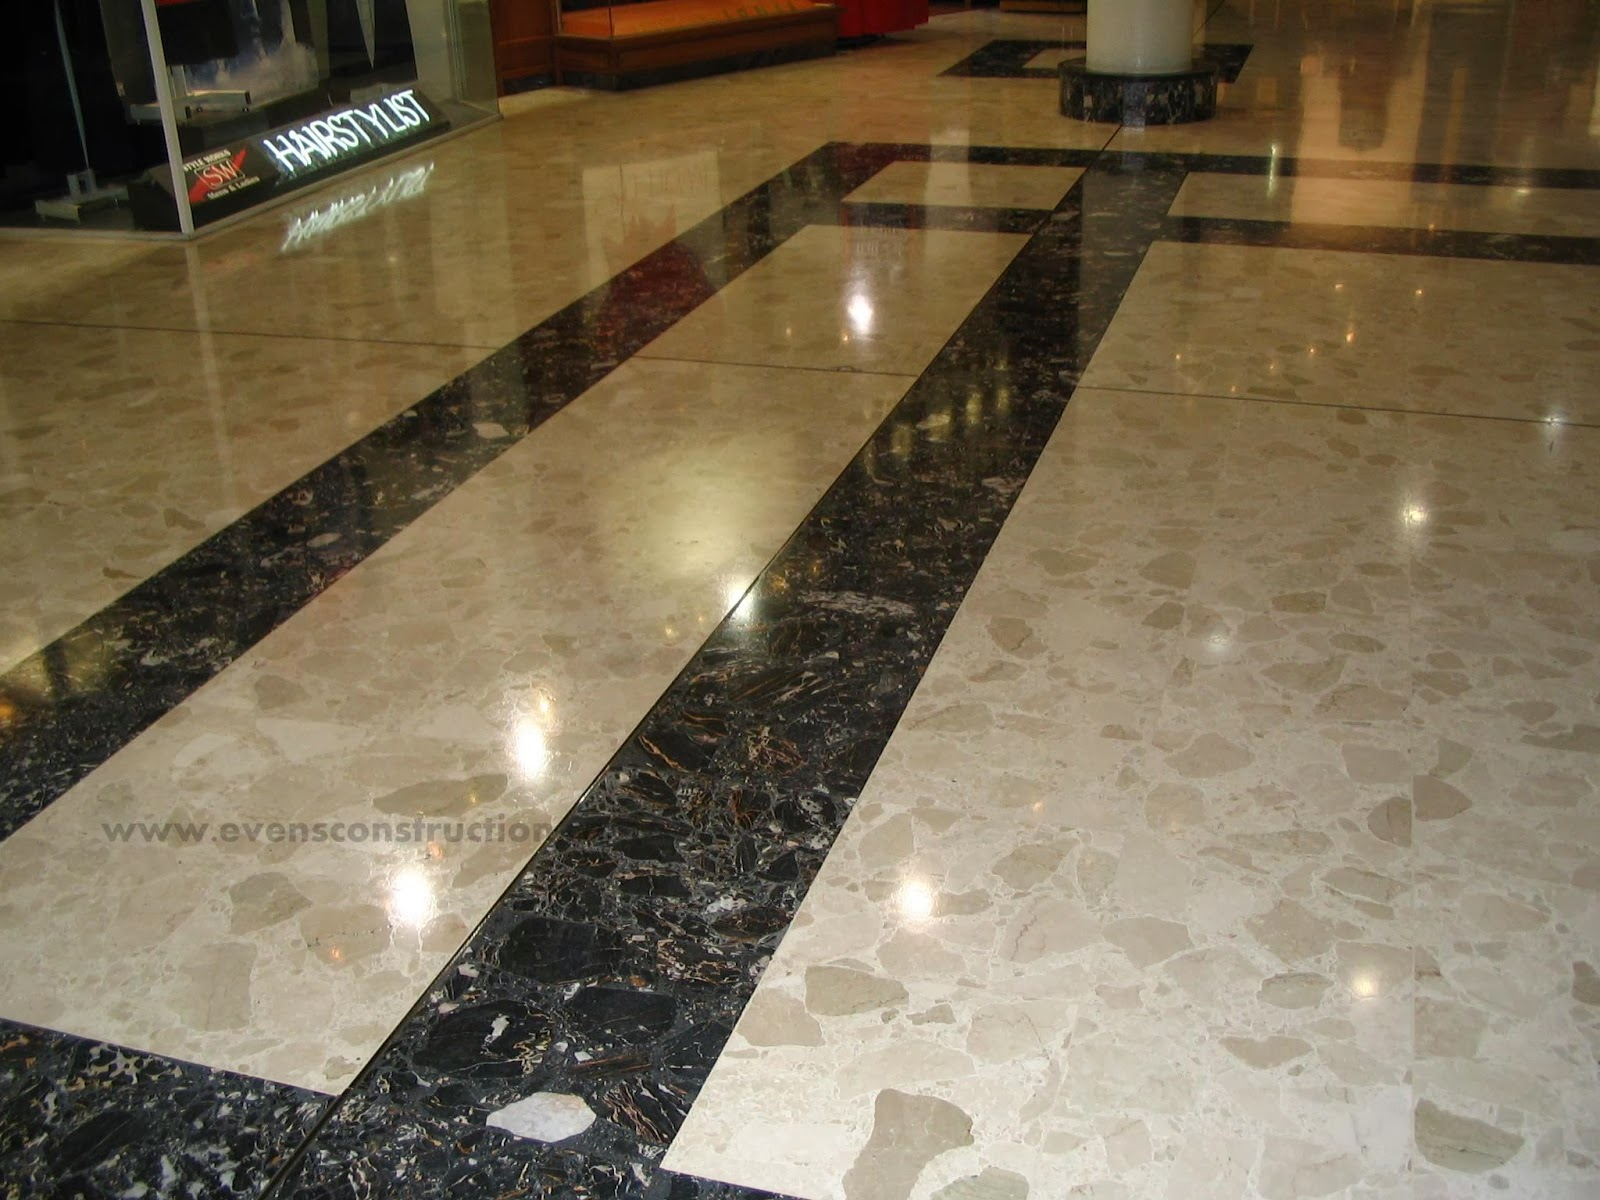 Evens construction pvt ltd marble flooring care and for Floor tiles design